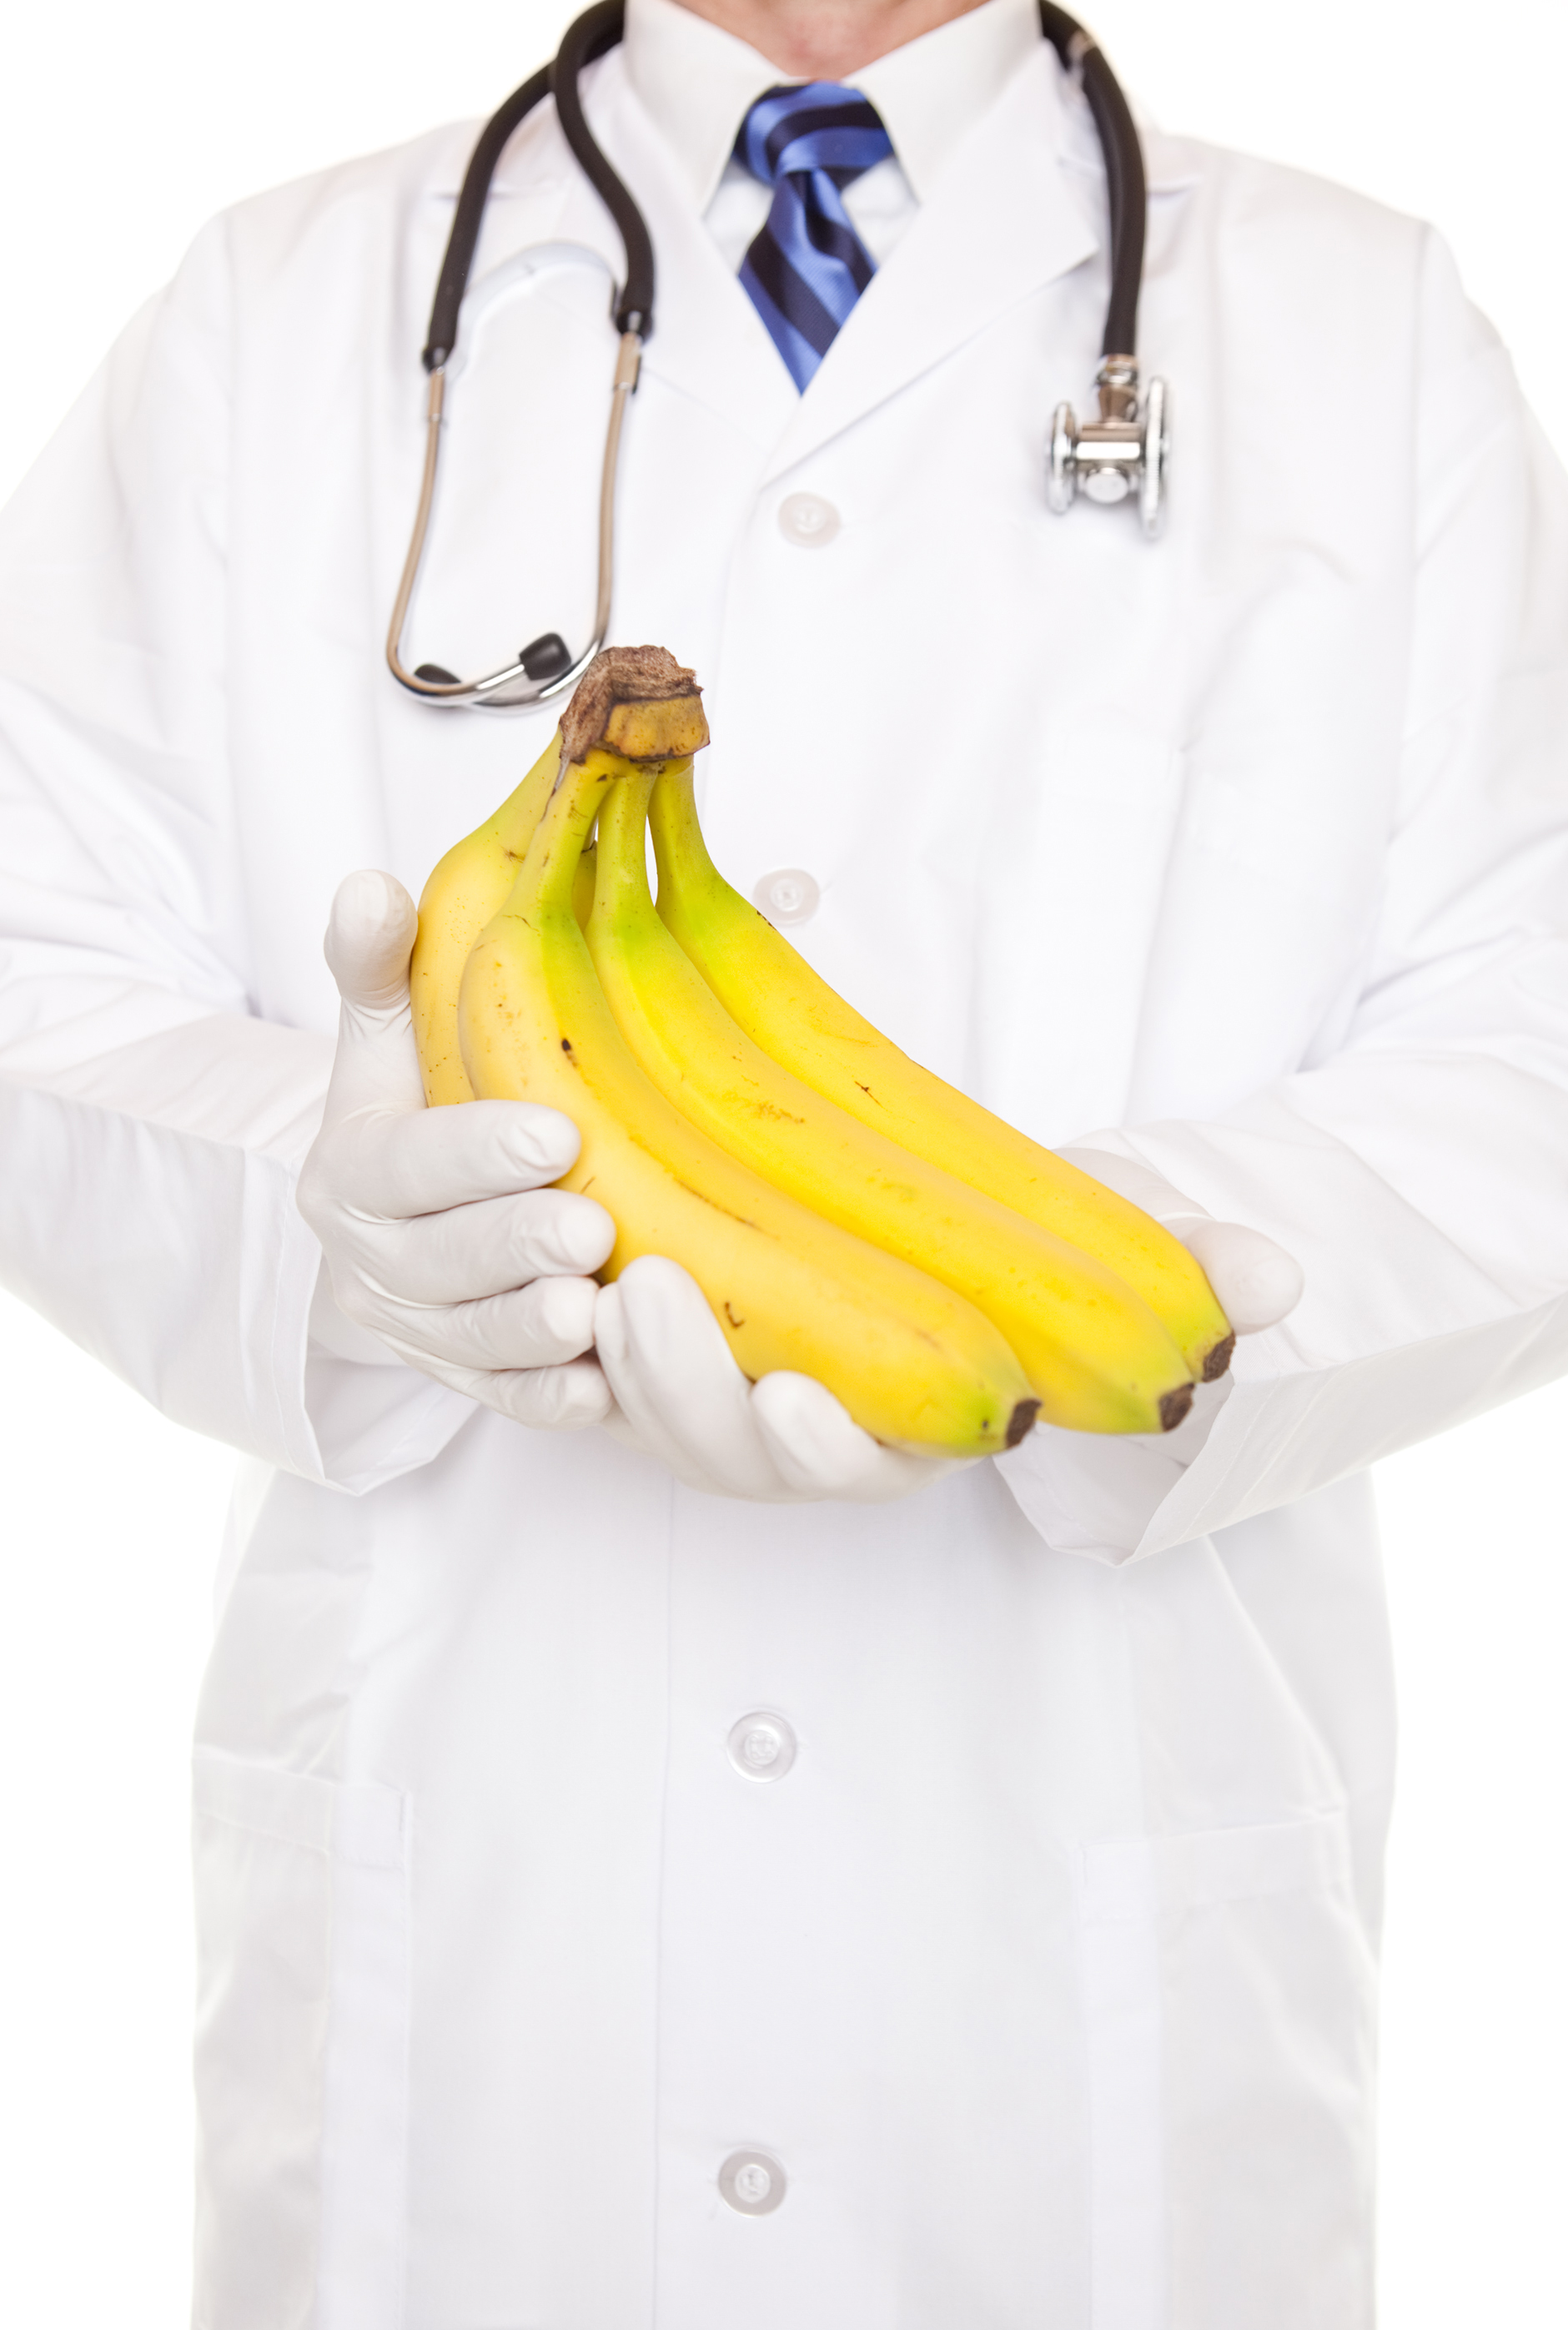 A doctor in a white coat holding a bunch of bananas. (stock image)